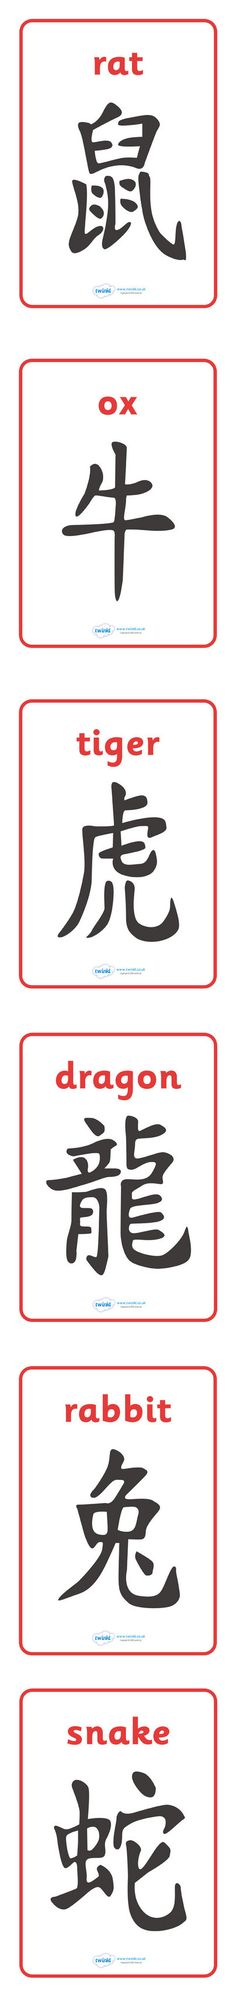 Chinese New Year Zodiac Display Posters - Pop over to our site at www.twinkl.co.uk and check out our lovely Chinese New Year primary teaching resources! chinese new year, chinese zodiac, chinese animals, chinese years, new year #twinkl #resources